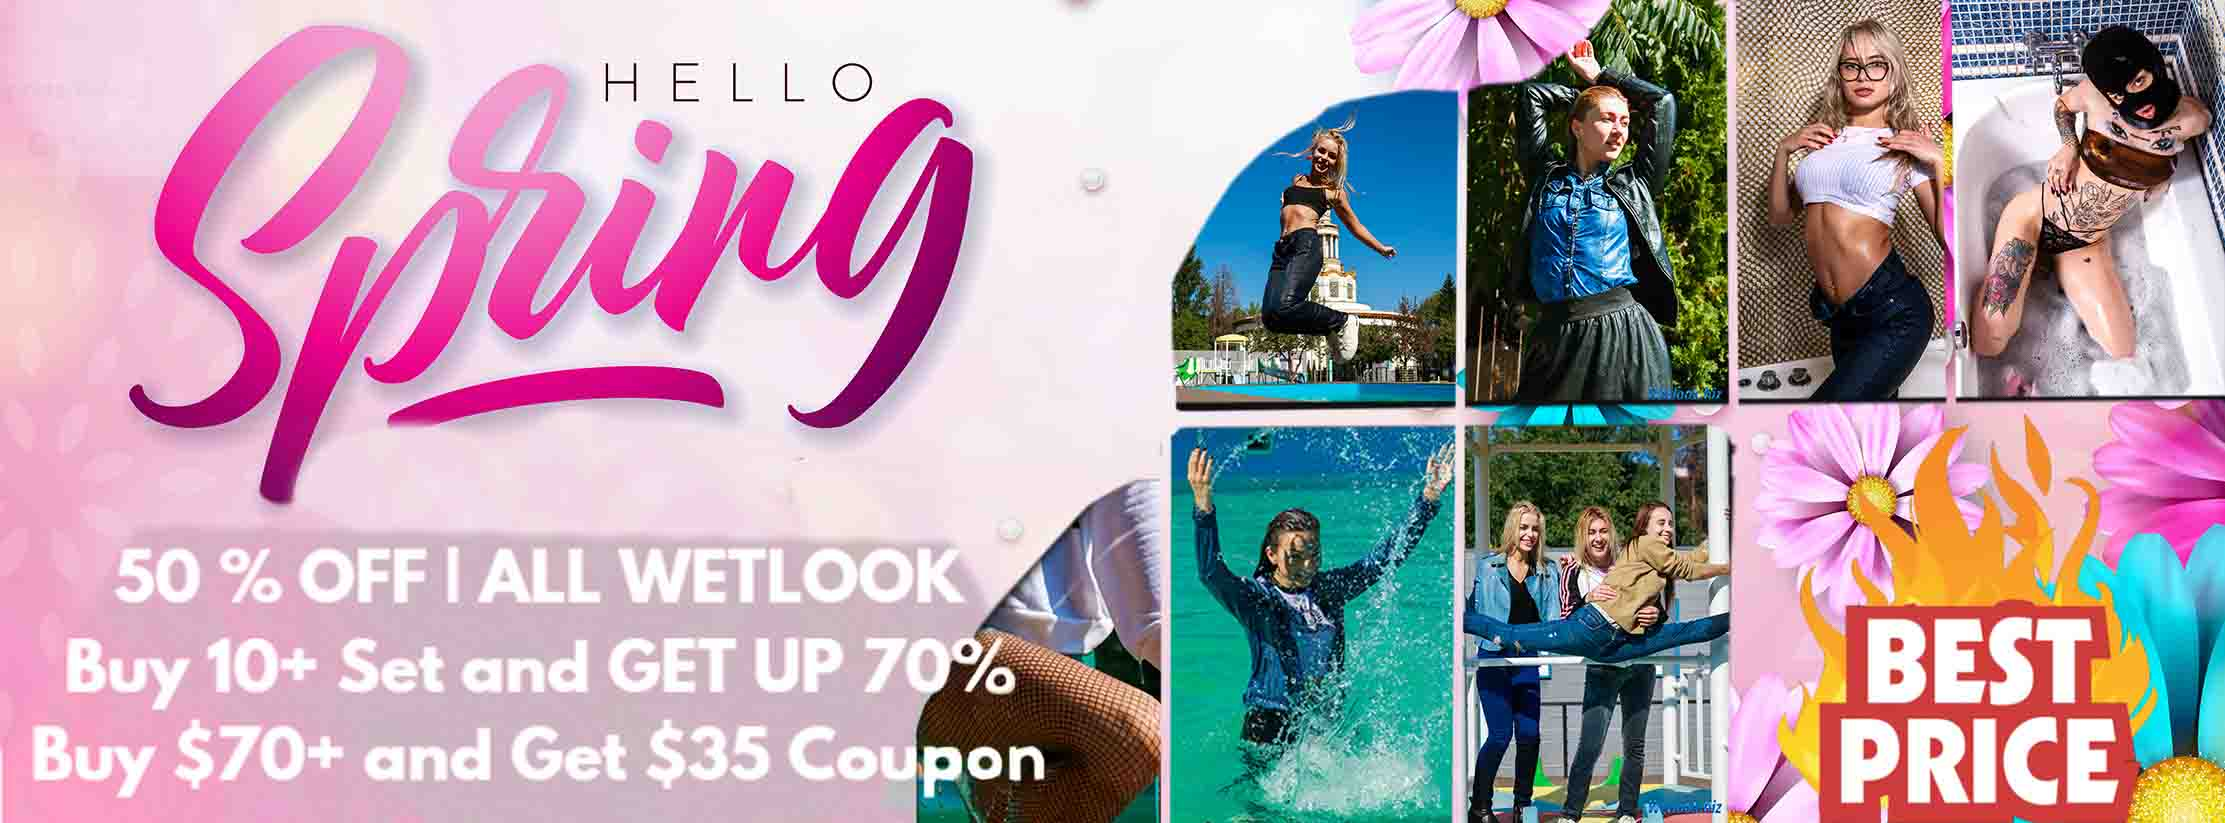 Wetlook Spring Sale